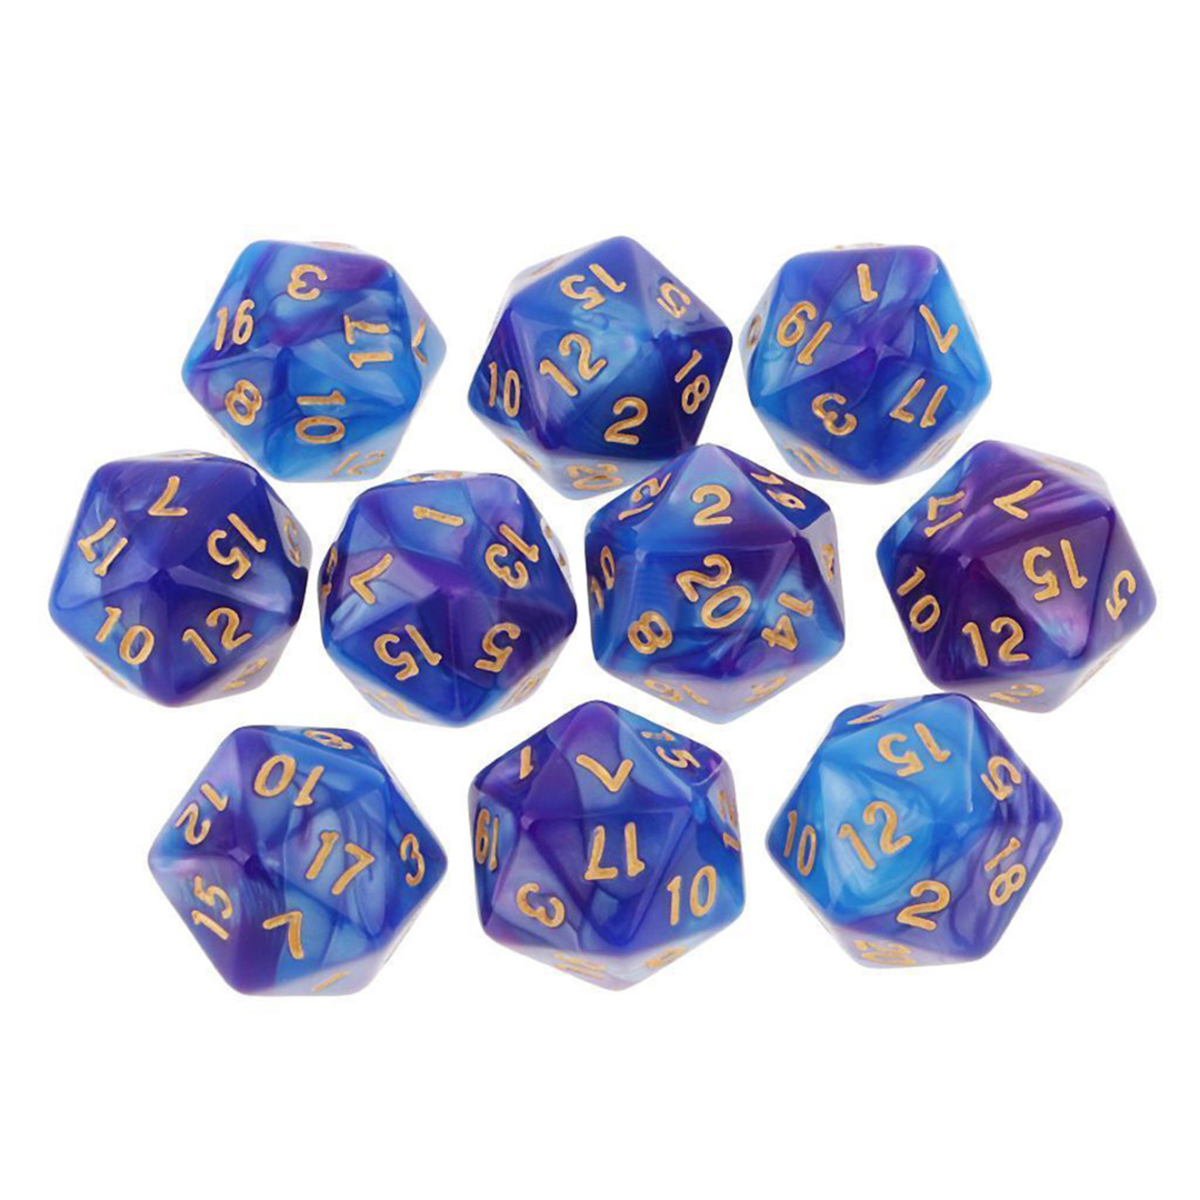 10pcs 20 Sided Dice D20 Polyhedral Dices Table Games EDC Gadget Playing Multisided Dice